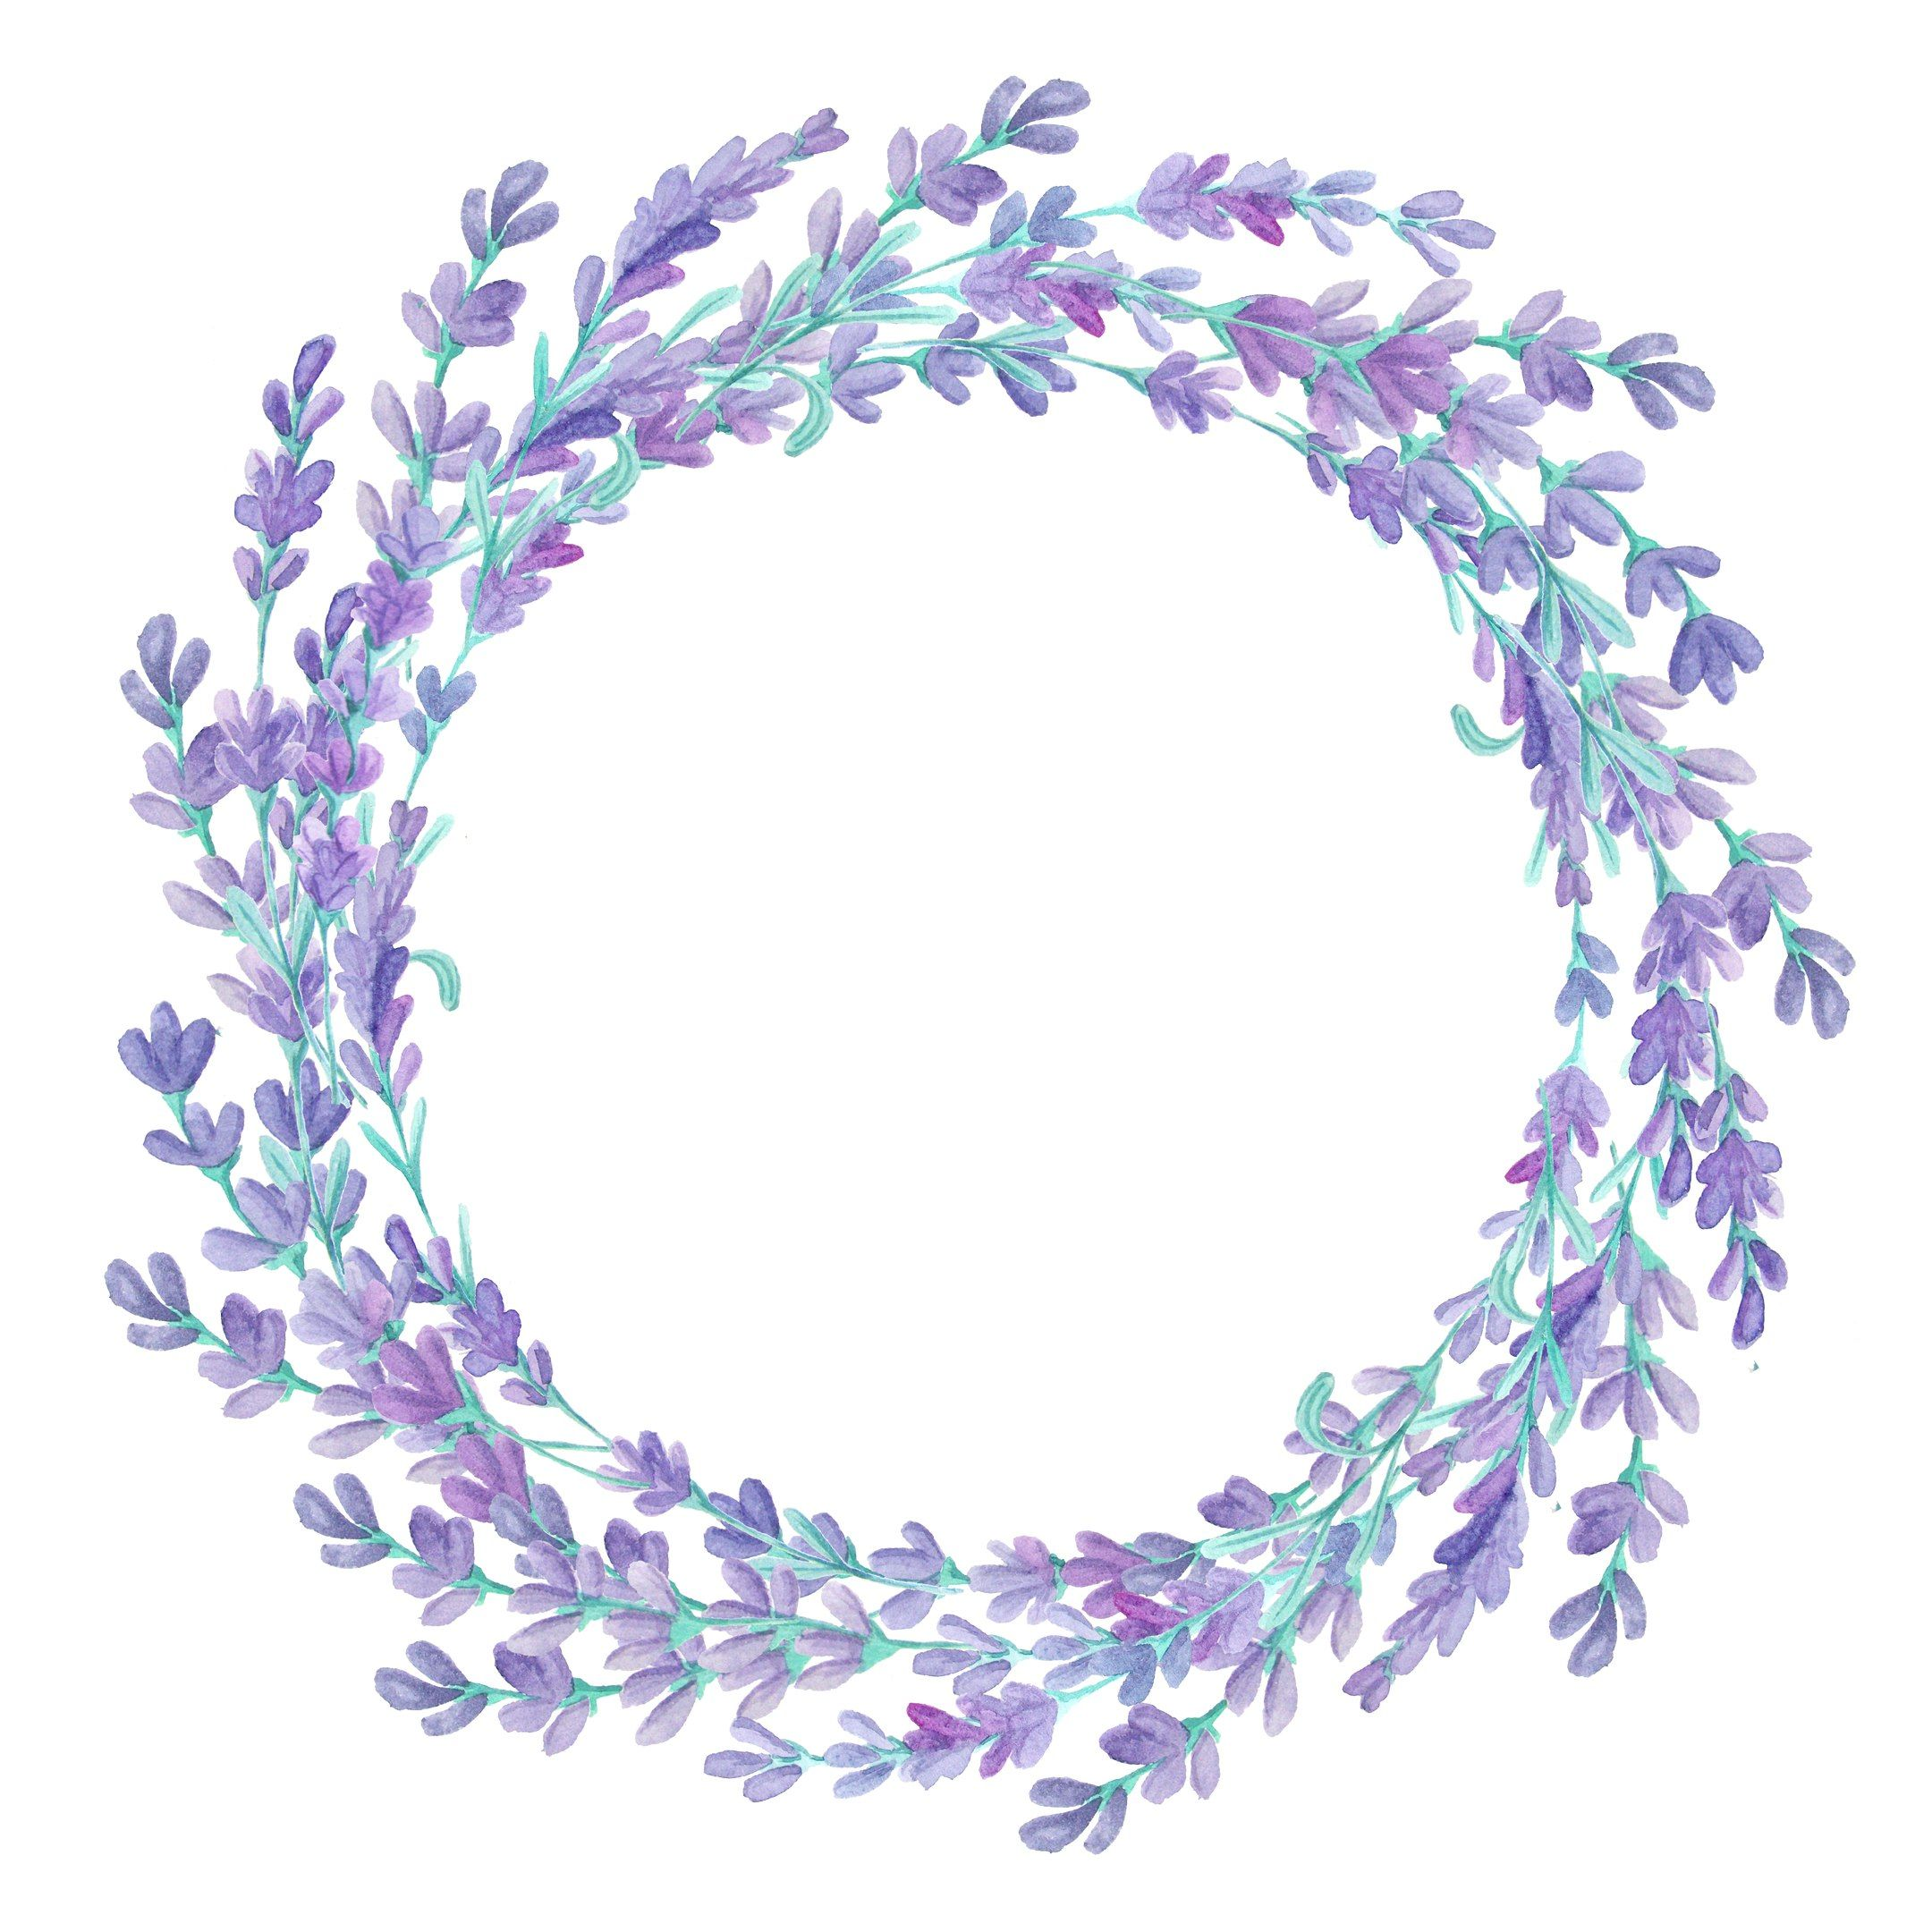 Art Flowers Cute Illustration Lavender Wreath Watercolor Flower Frame Flower Png Images